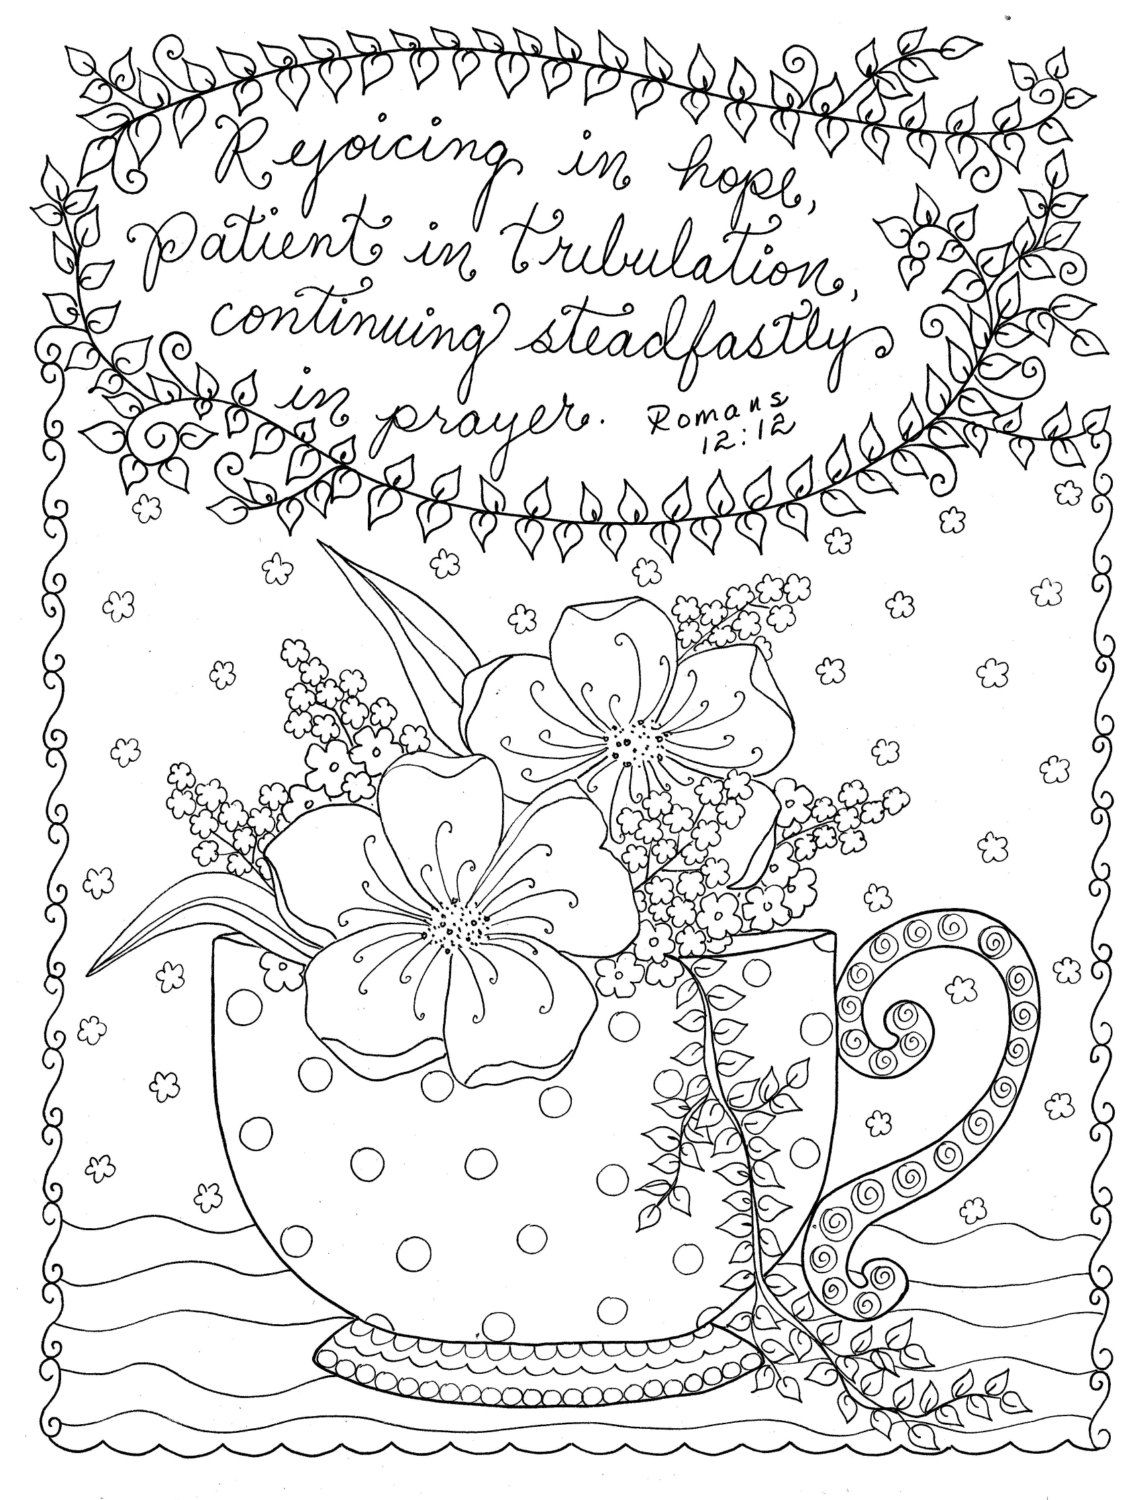 freee downloadable christian coloring pages - photo#41